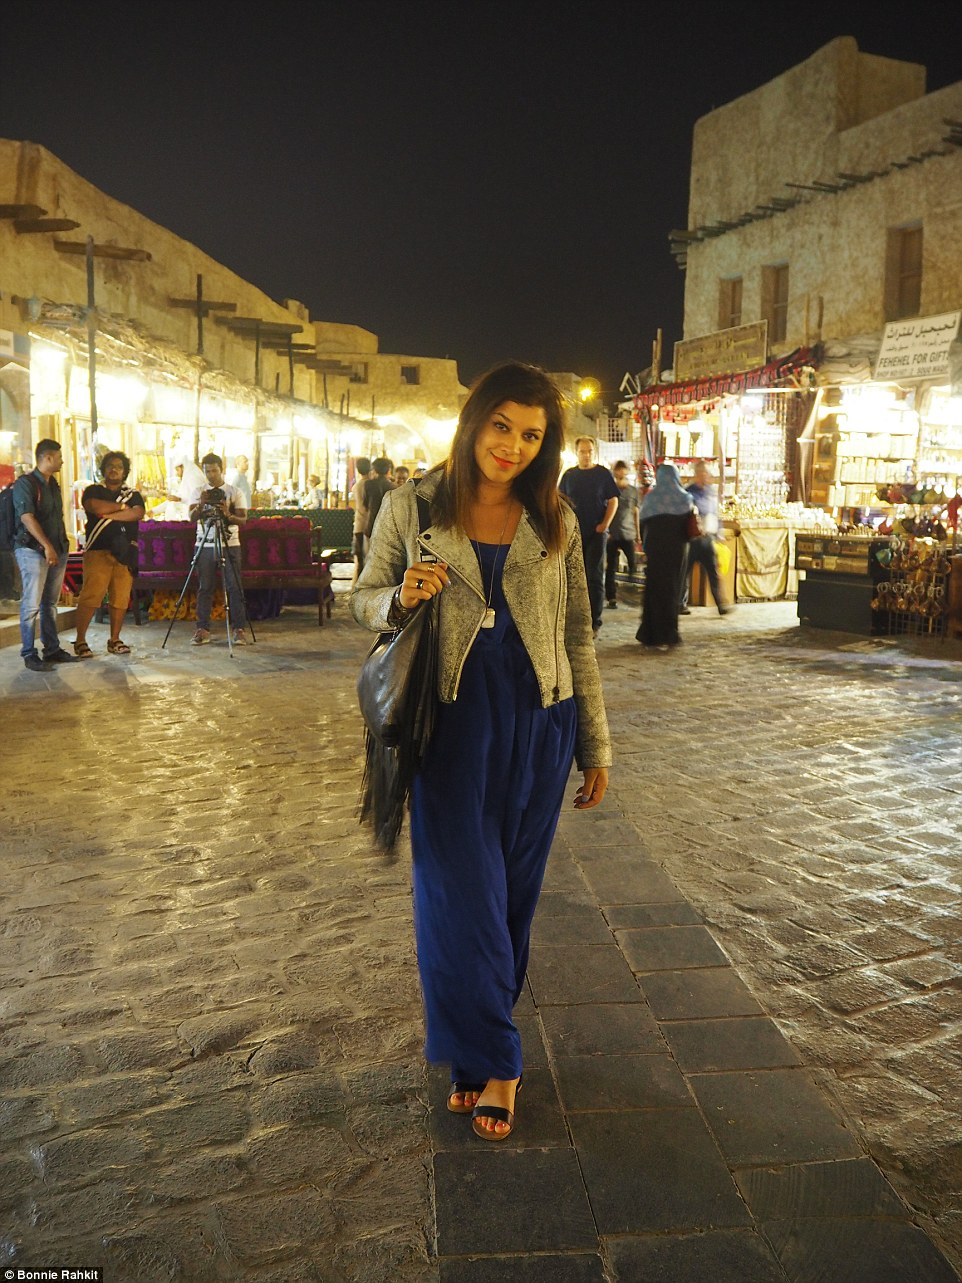 Bonnie Rakhit in Marrakesh's famous El Fnaa square: at night the place is a lively mix of traders, snake charmers, dancers and hawkers